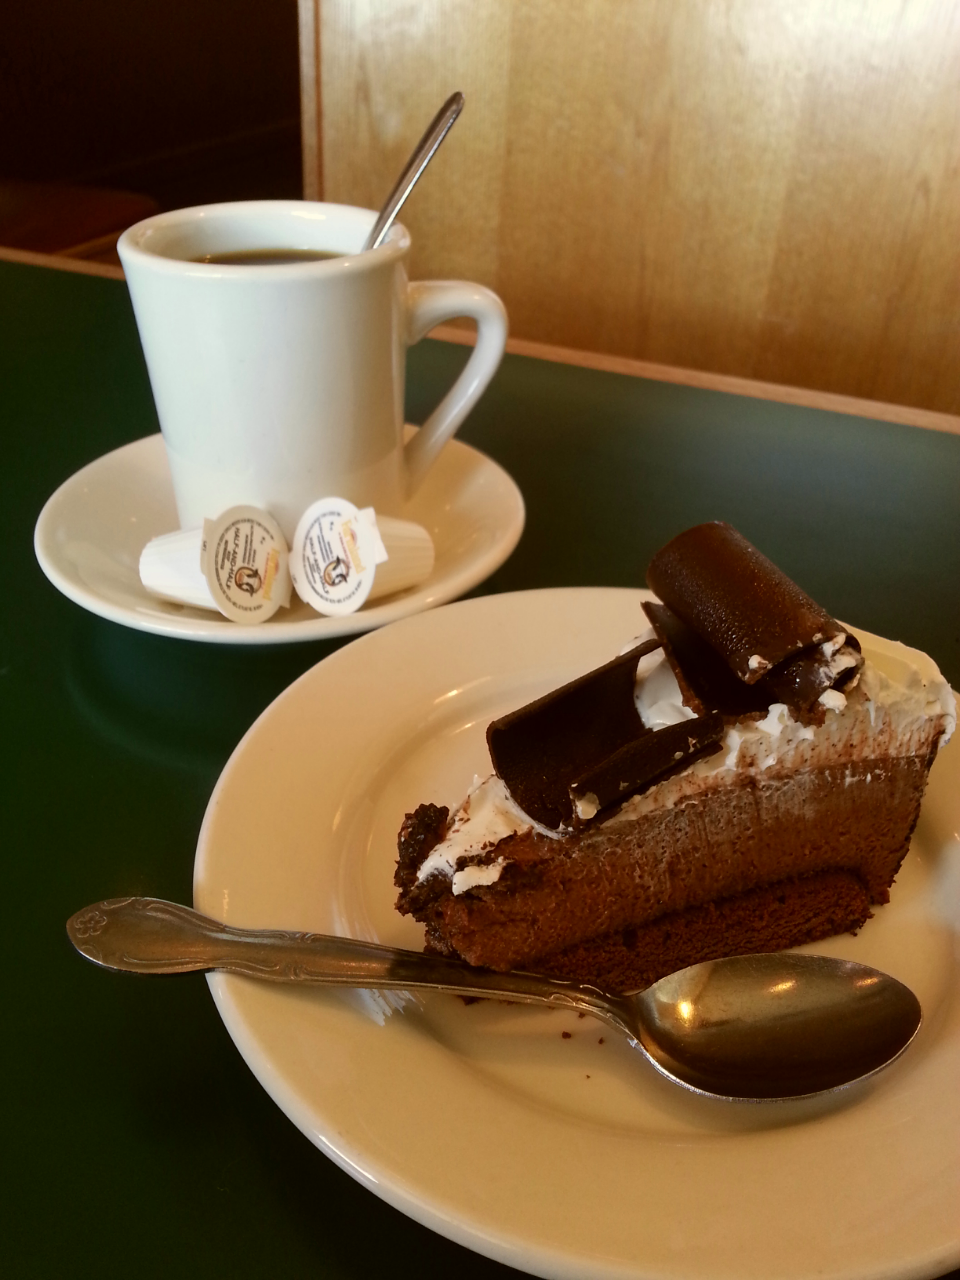 Copy of Copy of Copy of Copy of Copy of Copy of Chocolate Mousse Cake and Coffee!